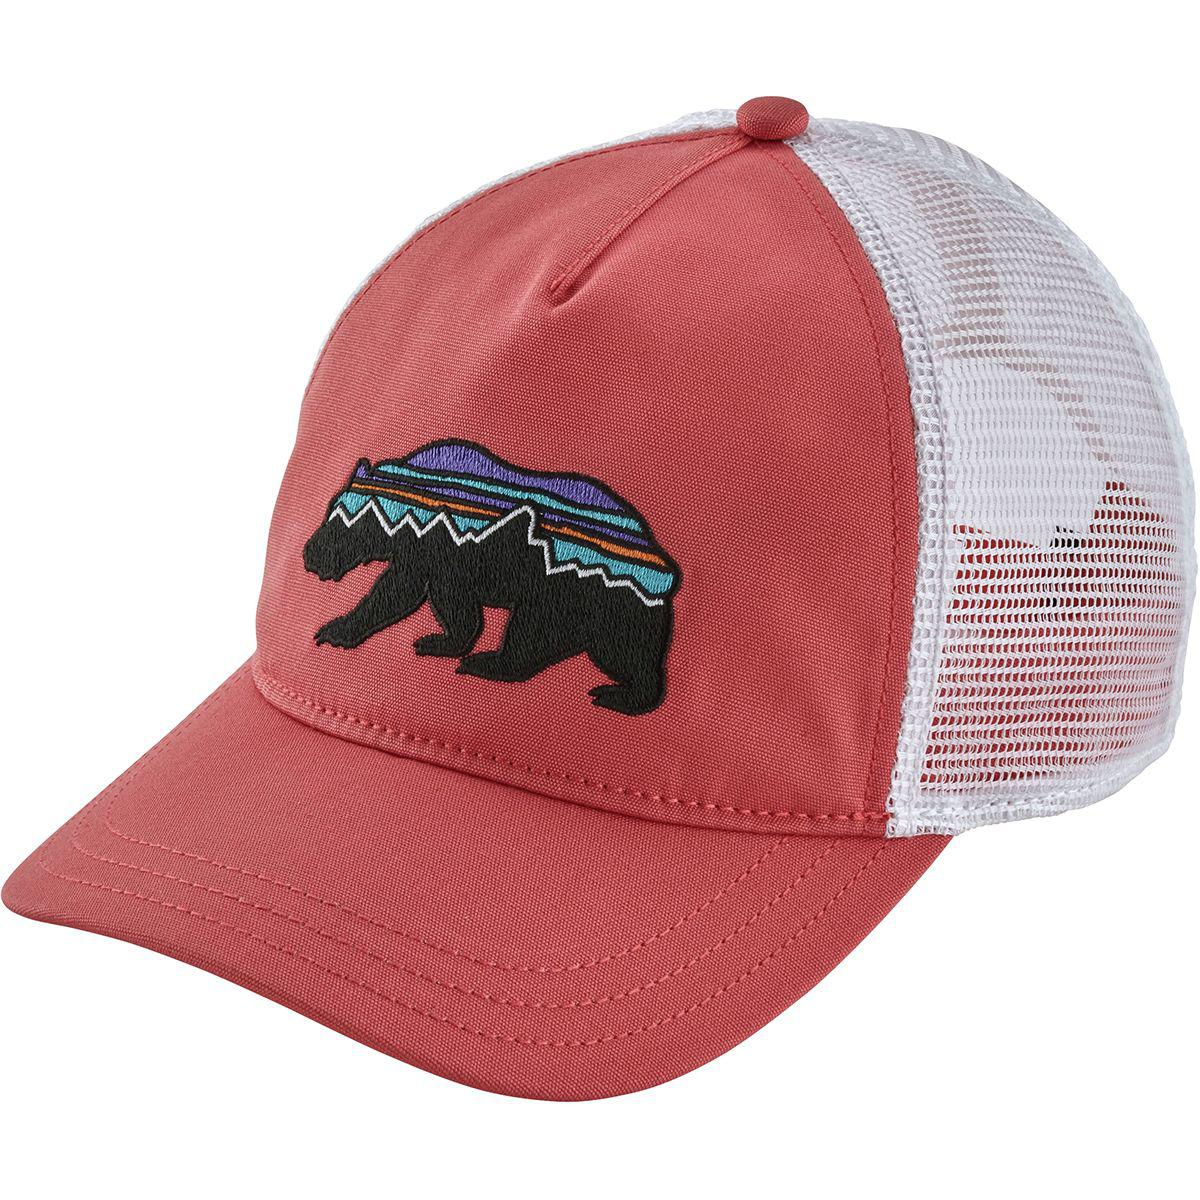 bb4cd79a624 Lyst - Patagonia Fitz Roy Bear Layback Trucker Hat in Pink